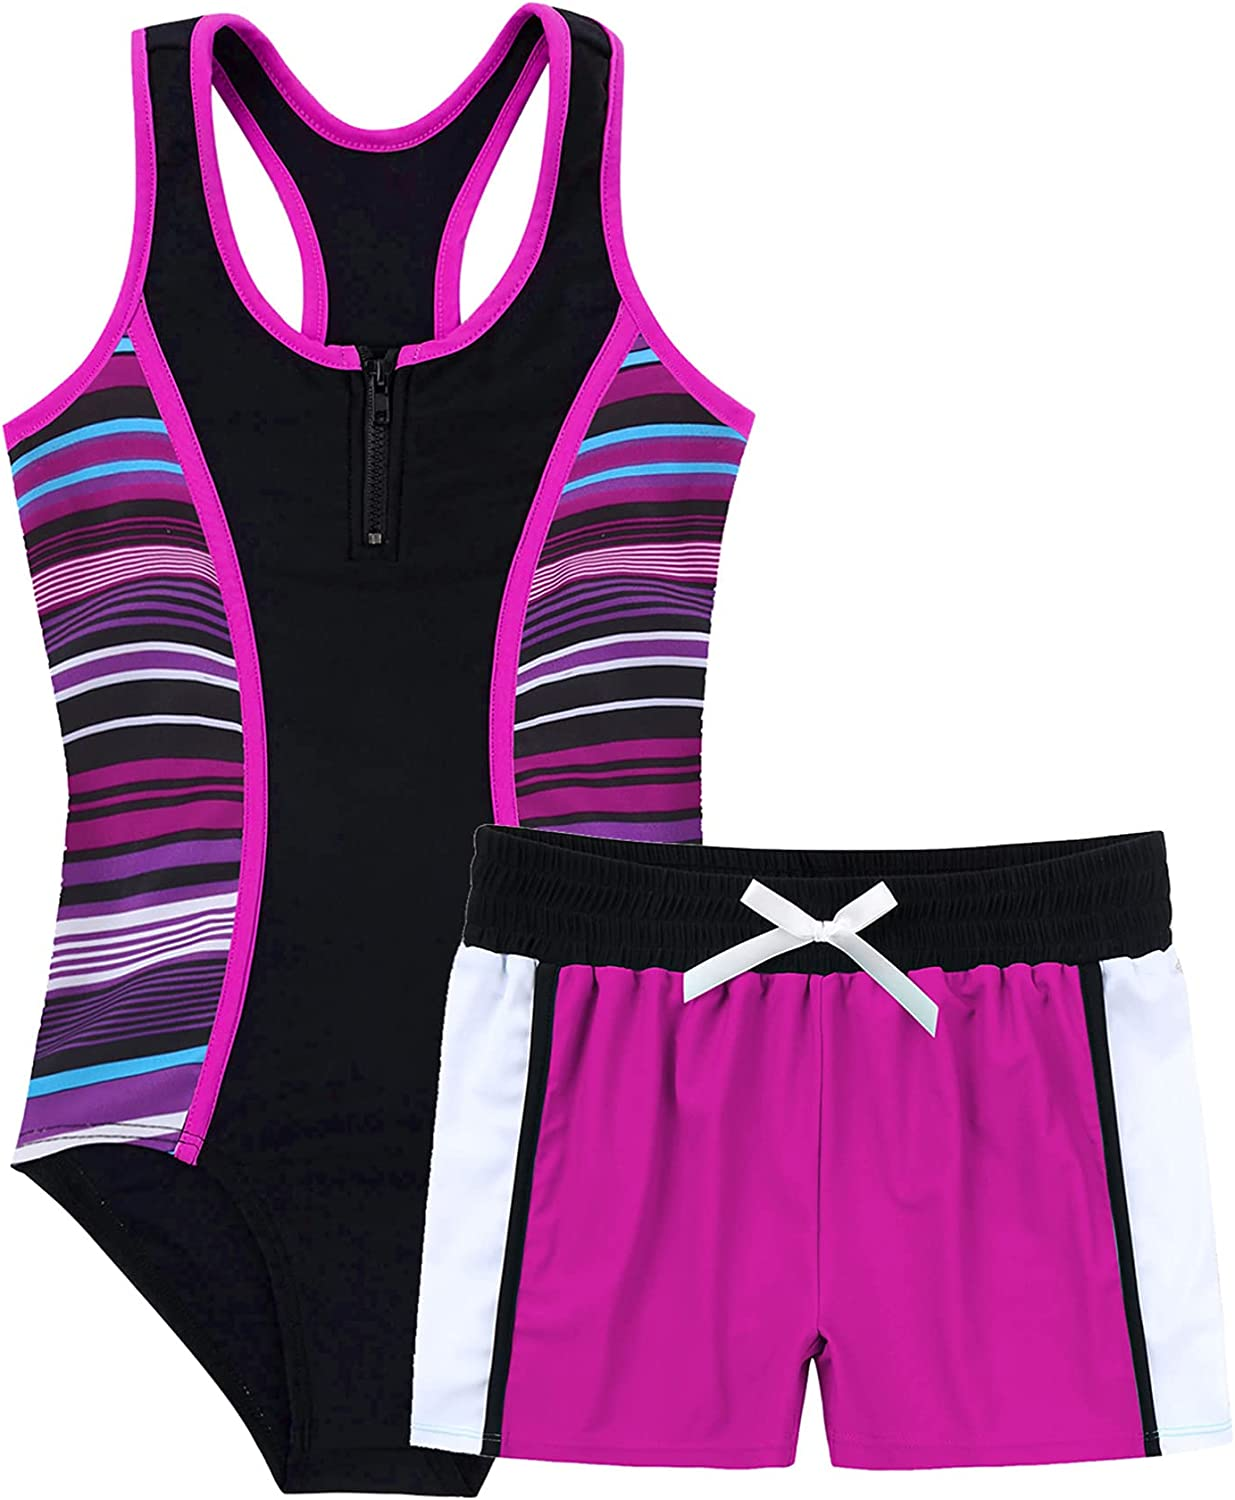 iiniim Kids Our shop most popular Girls 2 Piece Tankini Set Swimsuit Surfing One-Piece Challenge the lowest price of Japan ☆